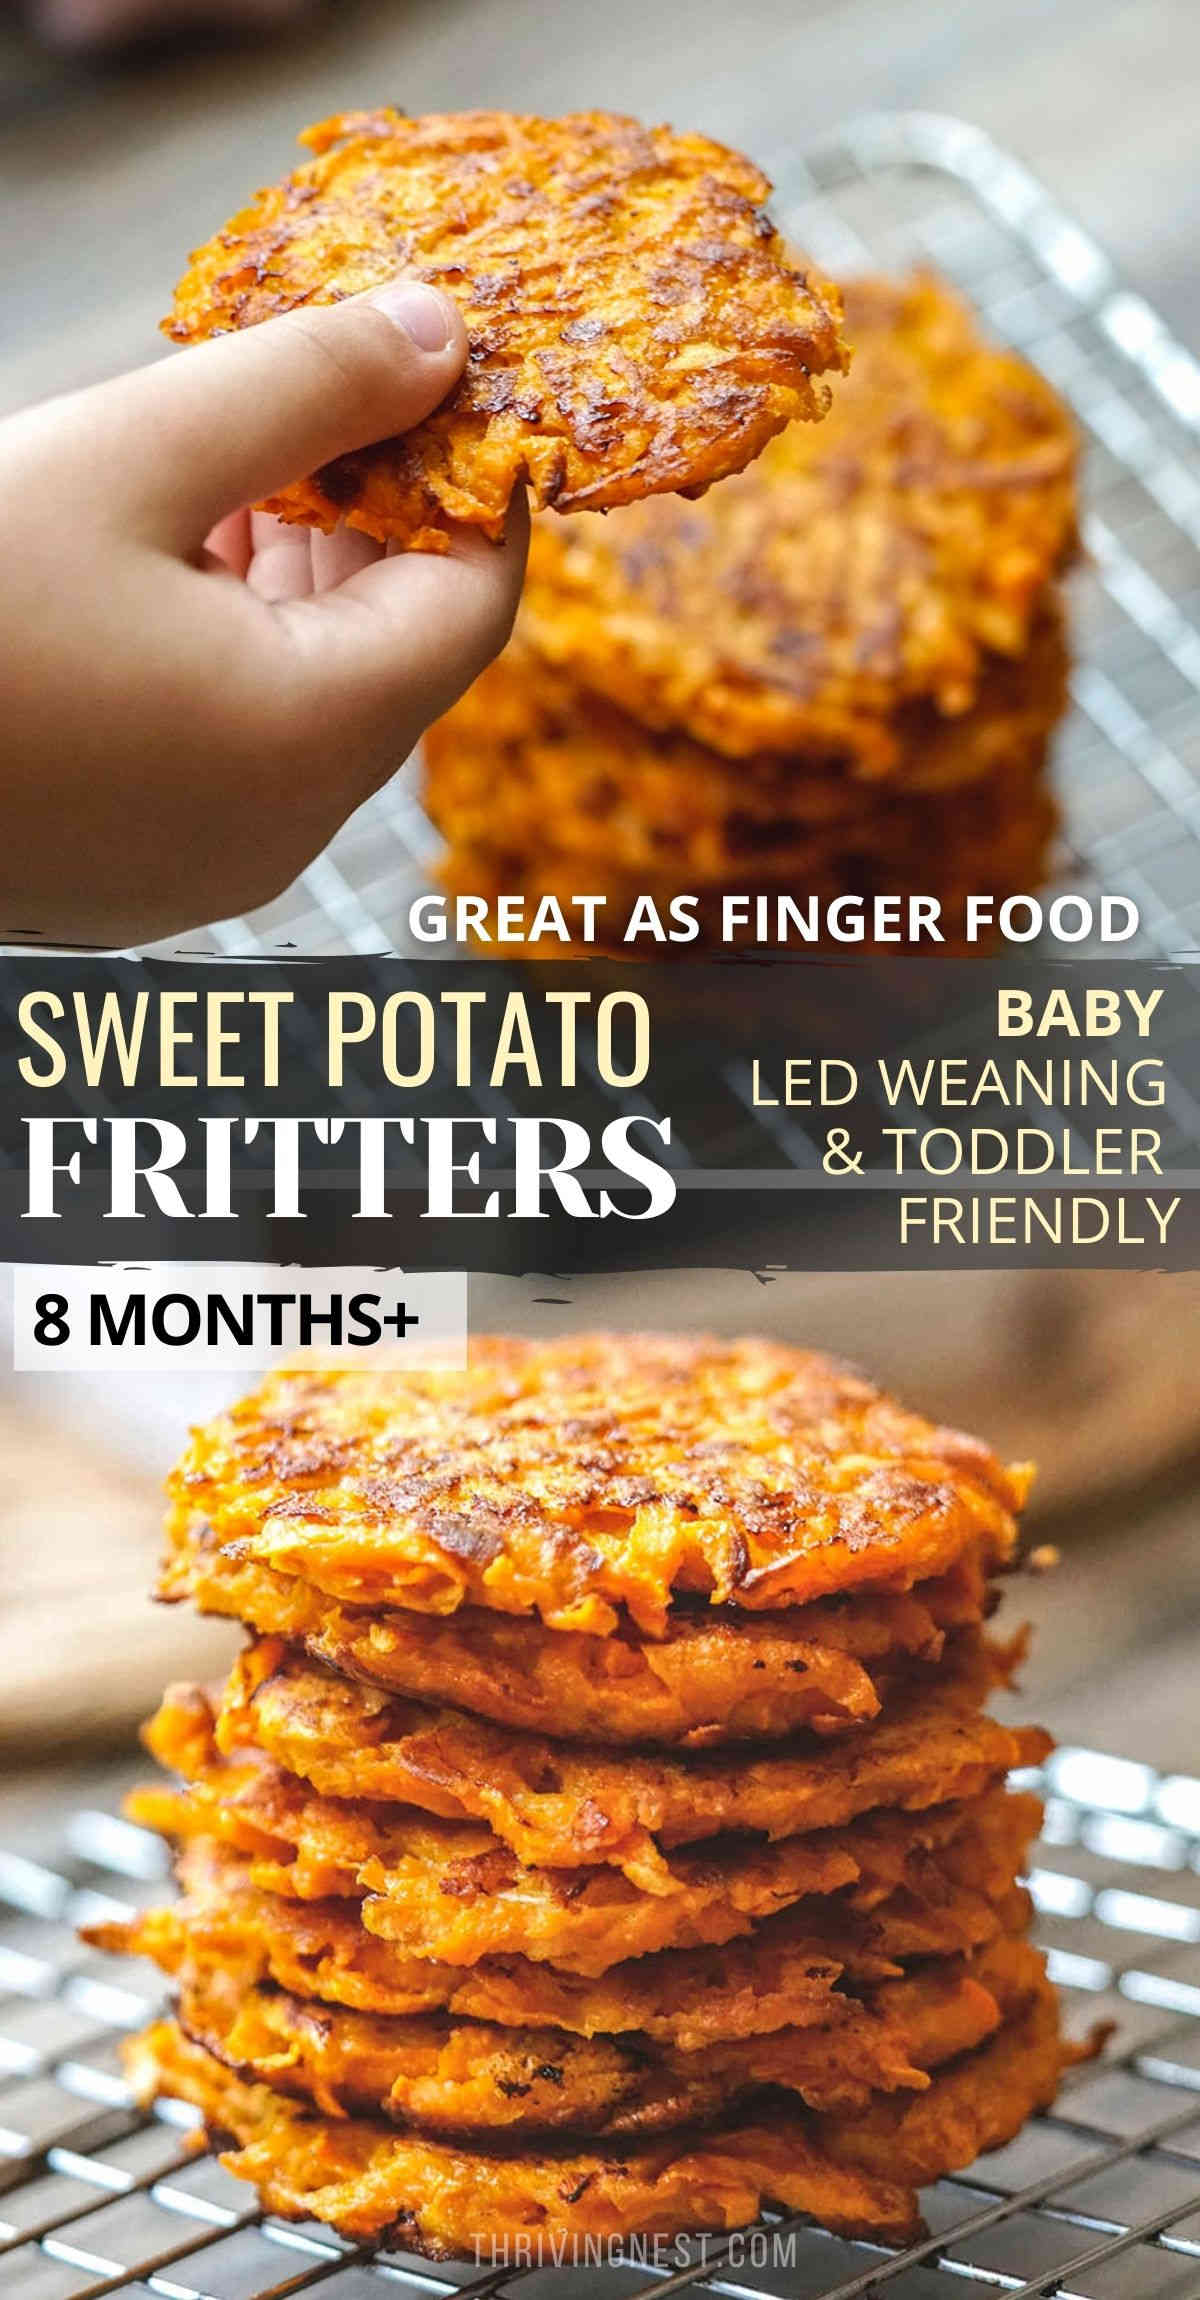 These sweet potato fritters make the perfect finger food for babies 8 months+ (baby led weaning), toddlers and older kids. Simple to make – shredded sweet potatoes being as the main ingredient -forming sweet and soft little patties. These sweet potato latkes/fritters can be made ahead fried or baked perfect as healthy finger food for babies (blw) toddlers lunchbox. #sweetpotato #fritters #patties #babyfood #babyfingerfood #baby #toddler #kidsfood #baked #lunchbox #babyledweaning #blw #healthy